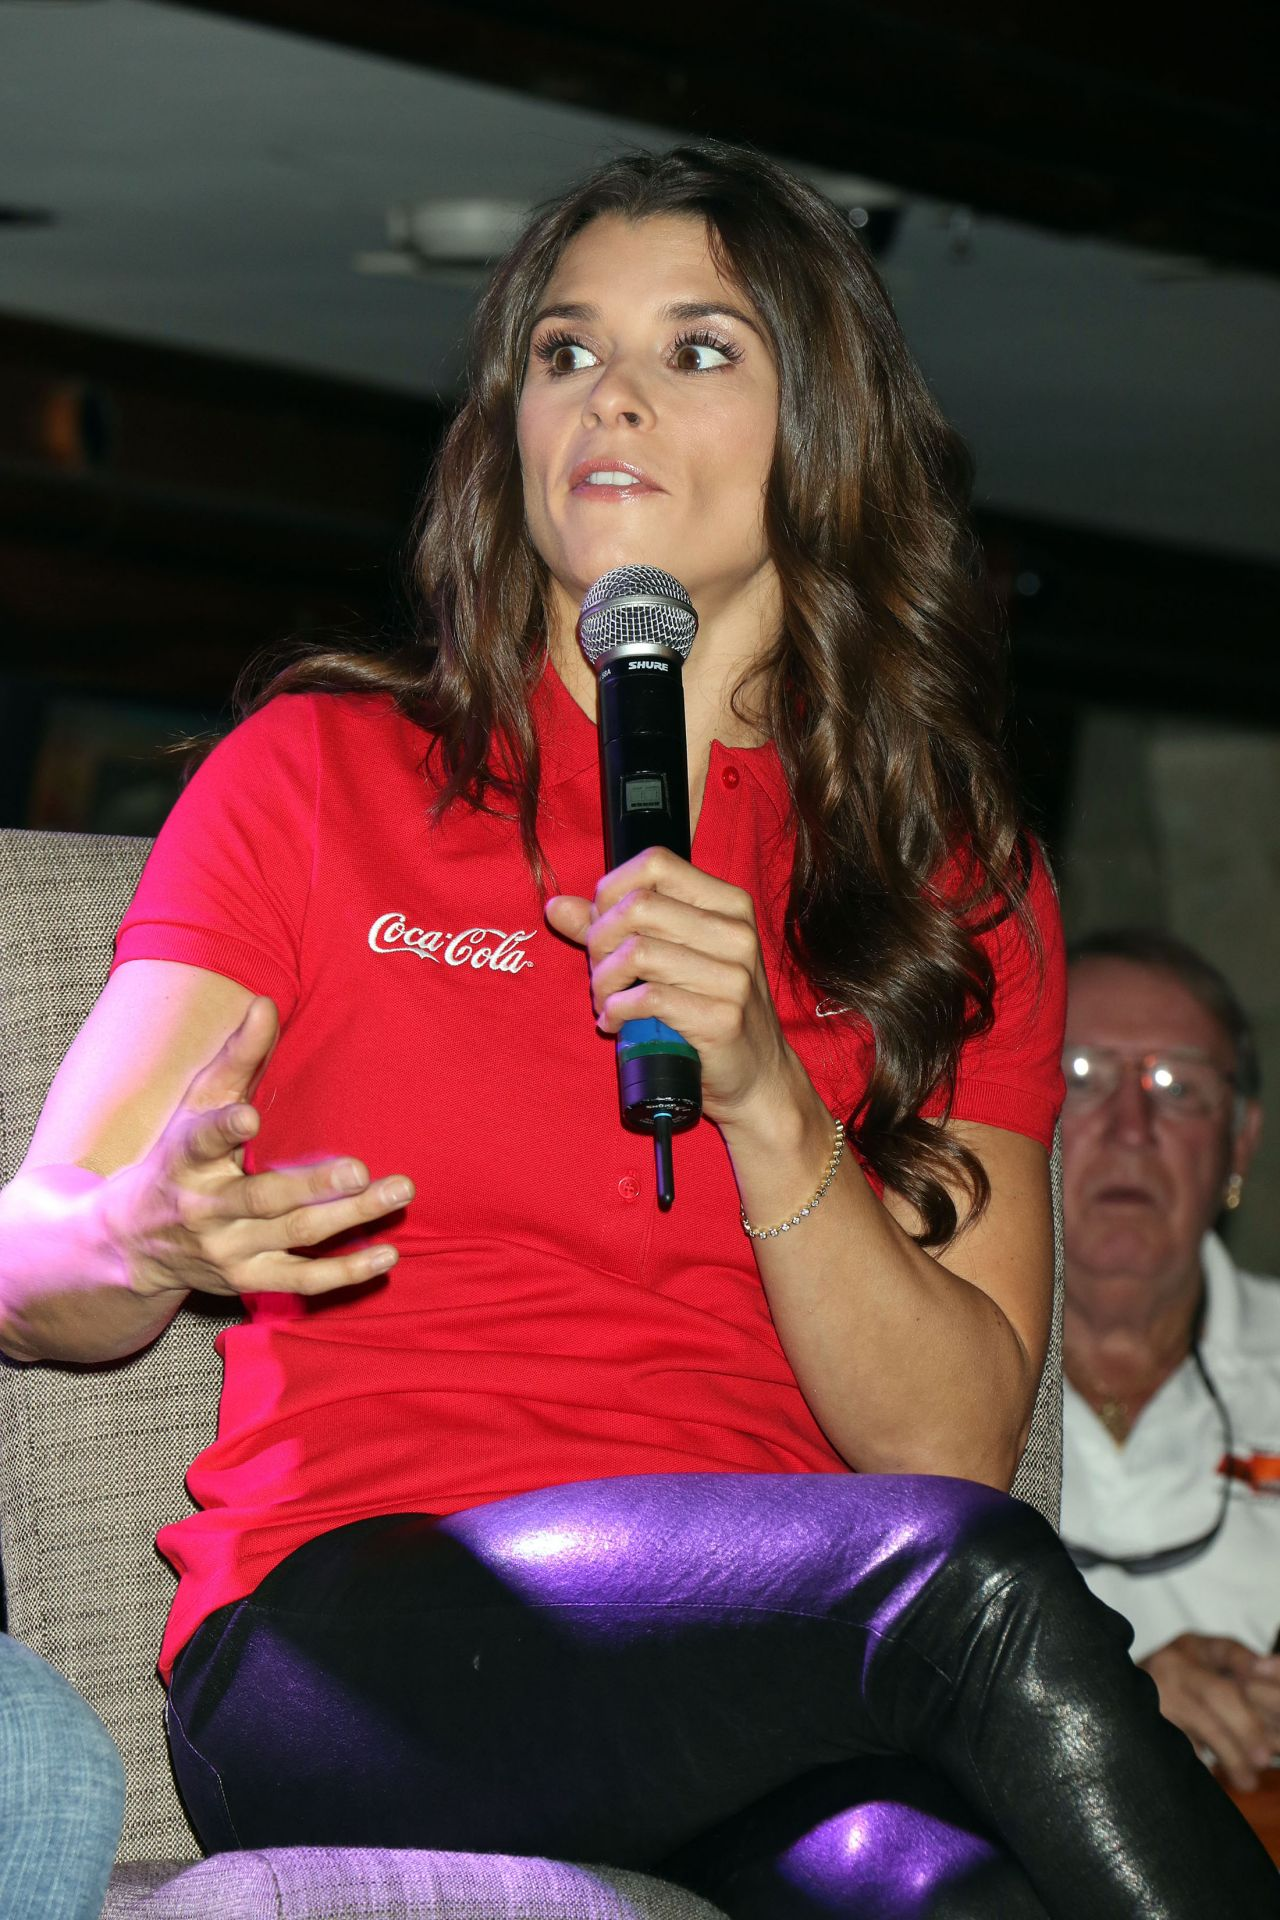 Danica Patrick Nascar Q Amp A At The Mirage Race Amp Sports Book In Las Vegas 3 5 2016